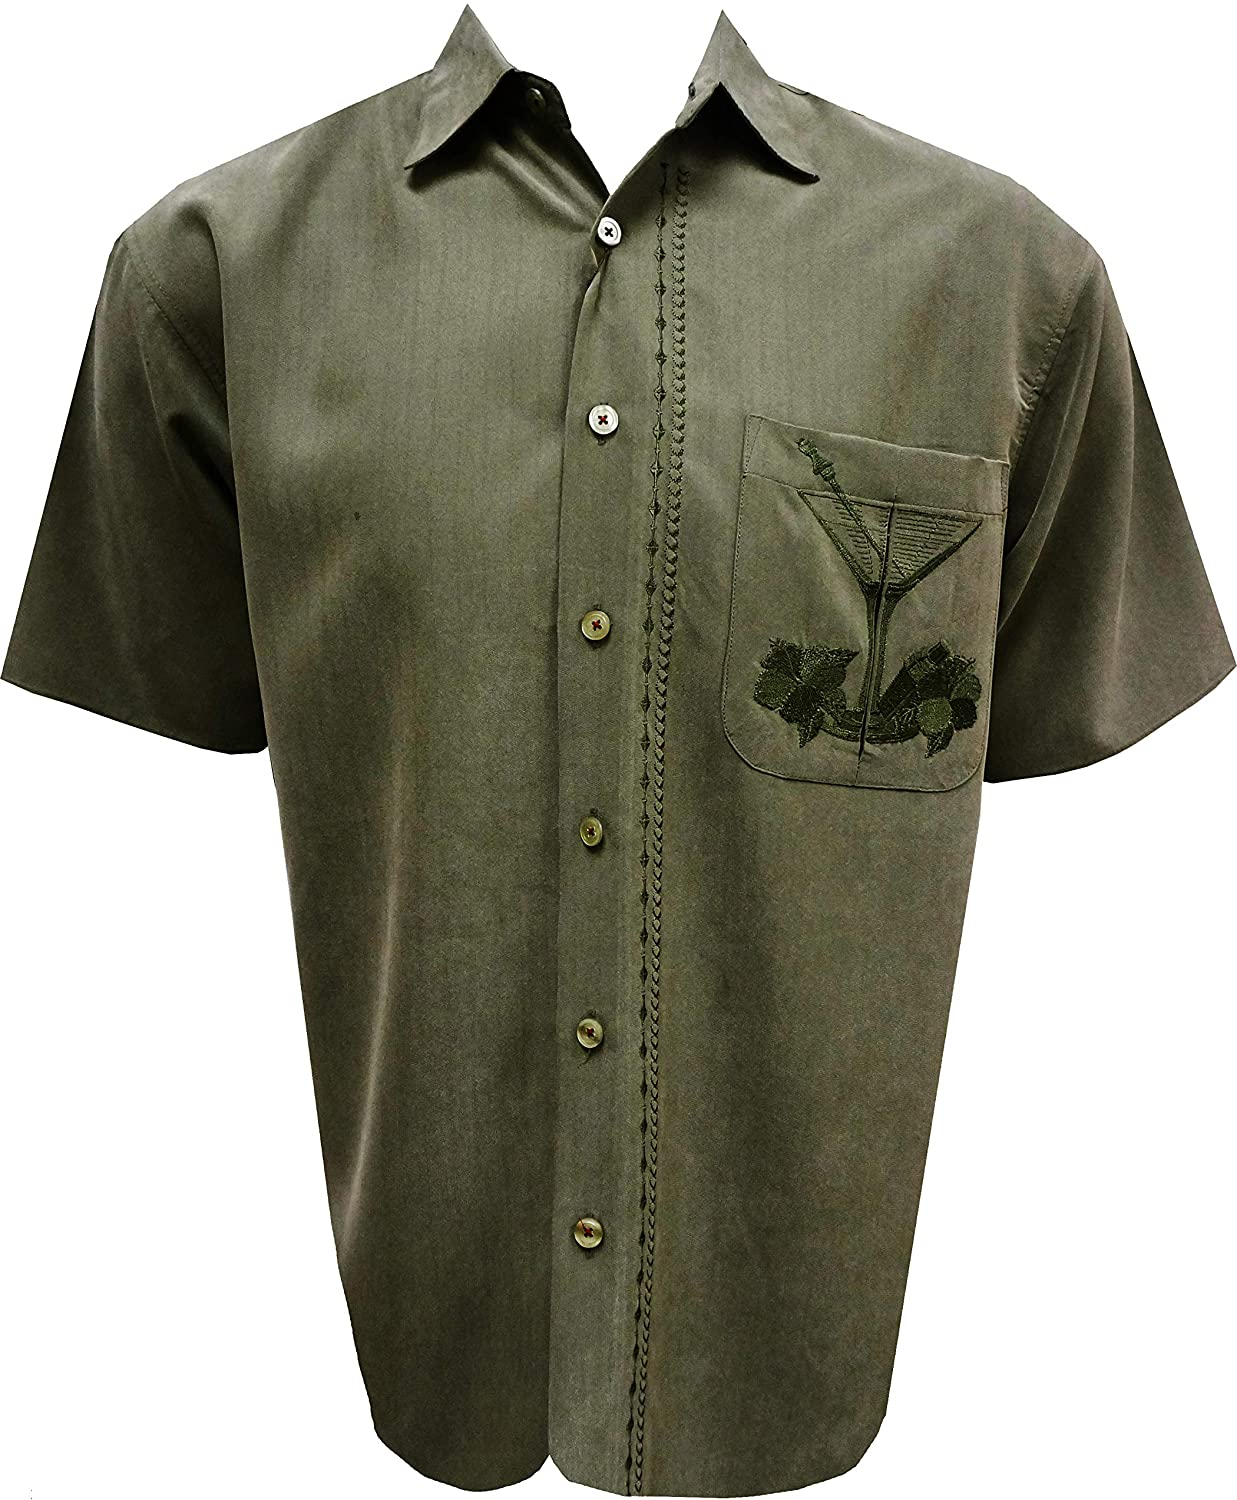 Bamboo Dedication Manufacturer regenerated product Cay Mens Short Sleeve W Martini Embroidered Olivas Casual